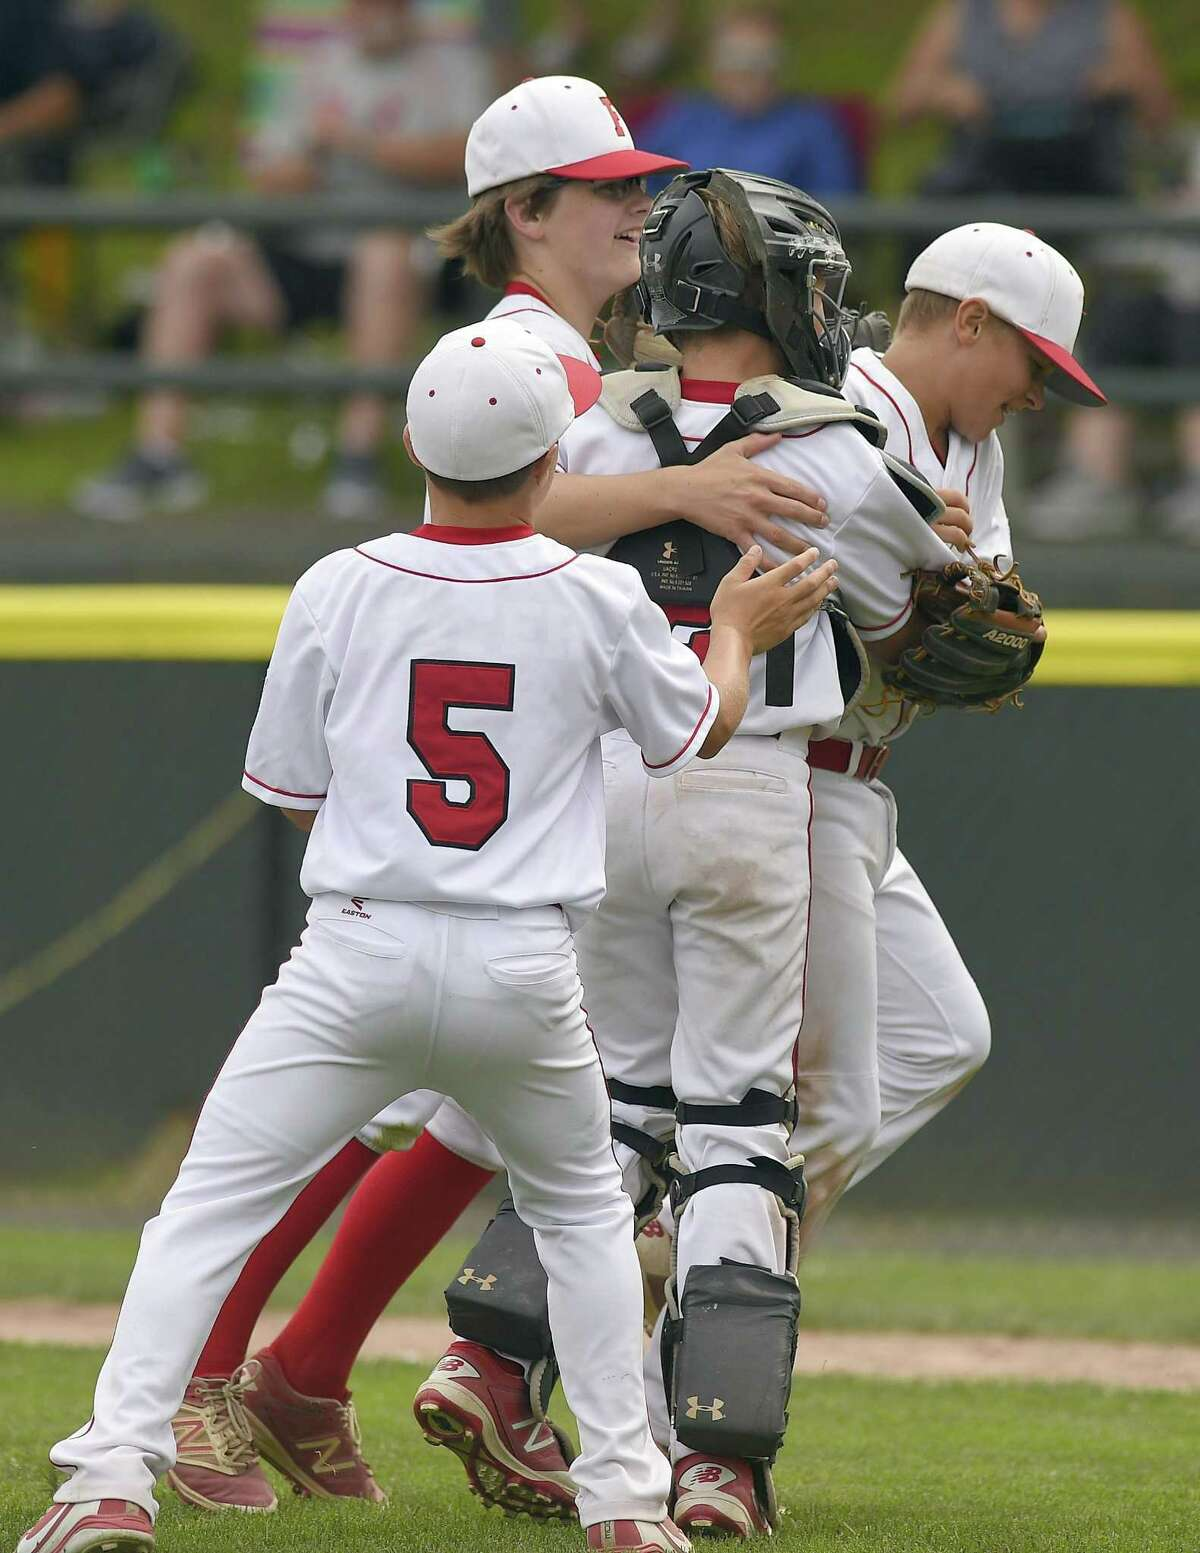 Fairfield American players Jude Gussen (5), Pierce Cowles (8), catcher Timmy Domizio (2) and relief pitcher Charlie Yates (18) celebrate their 5-2 win over Milford in a Section 1 Little League Championship at Drotar Park on July 21, 2018 in Stamford, Connecticut.